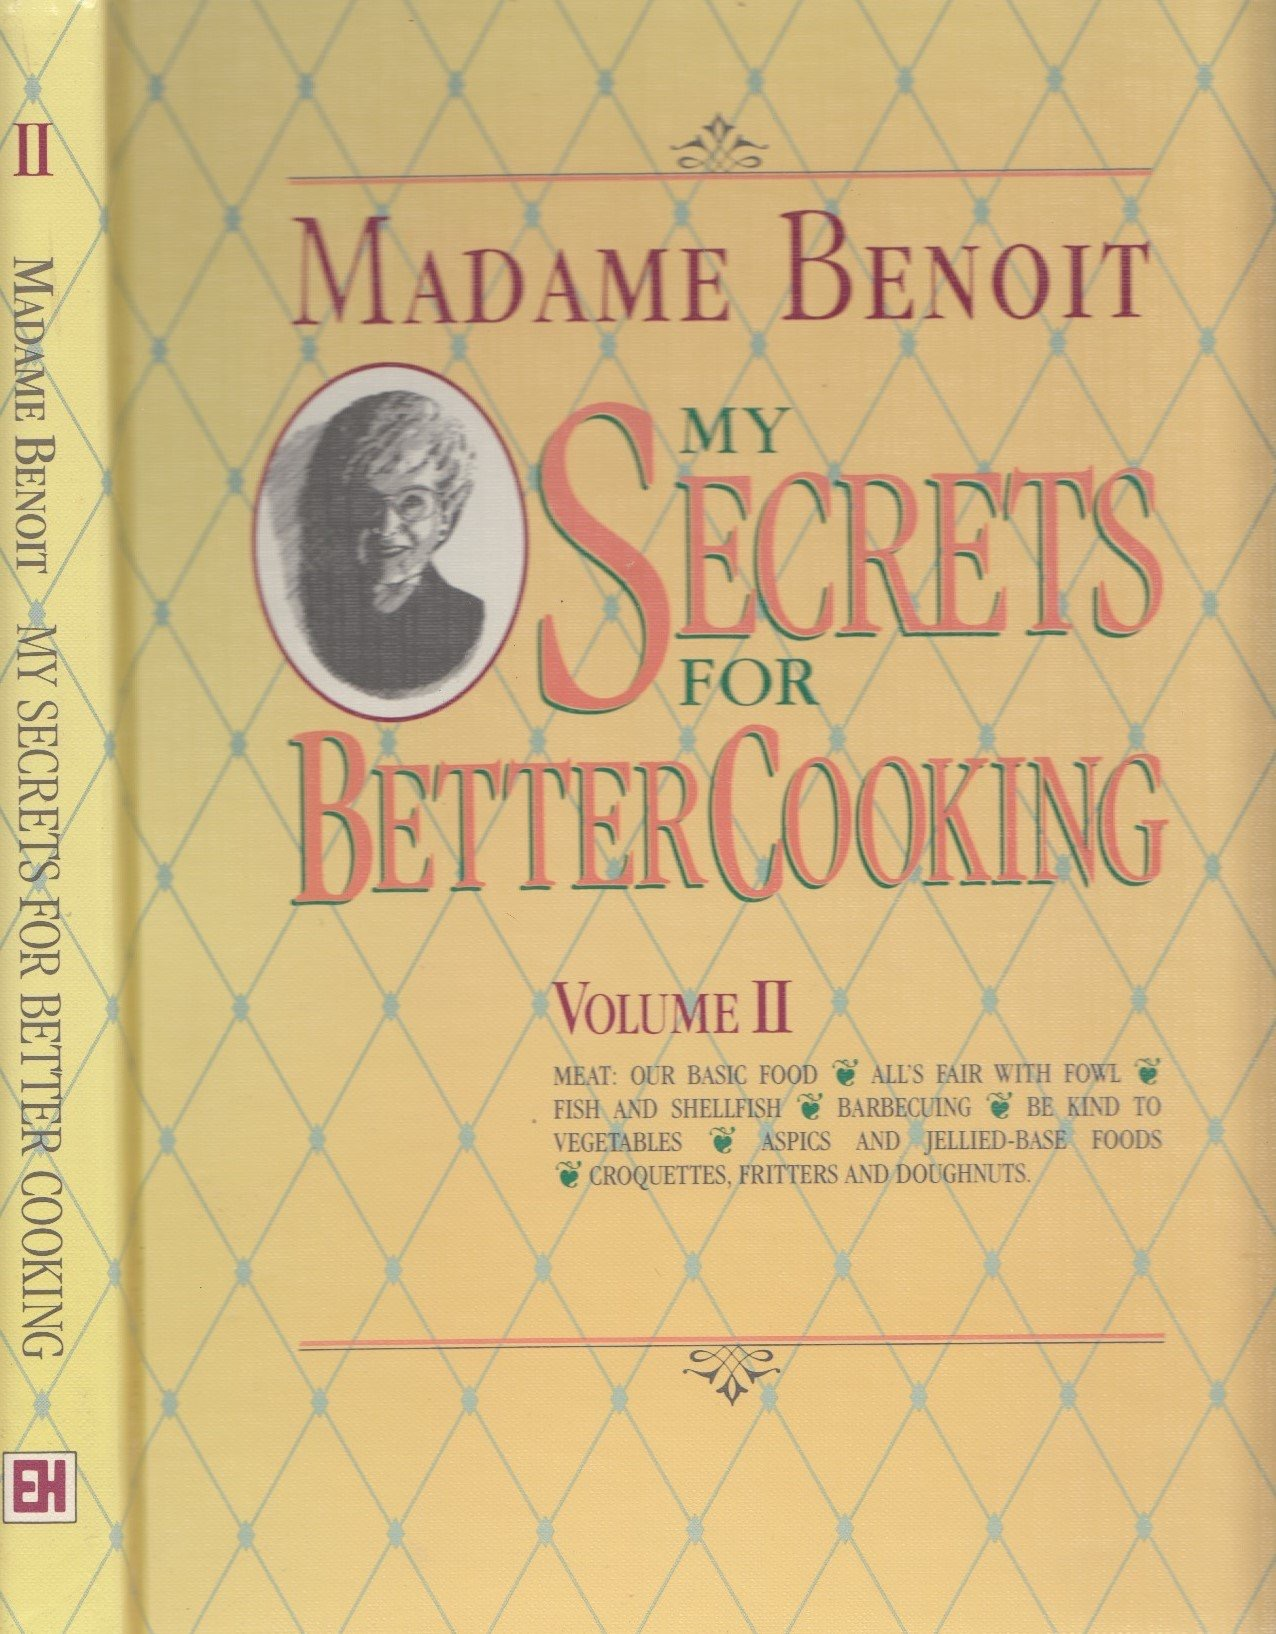 My Secrets For Better Cooking Volume I _ MADAME BENOIT